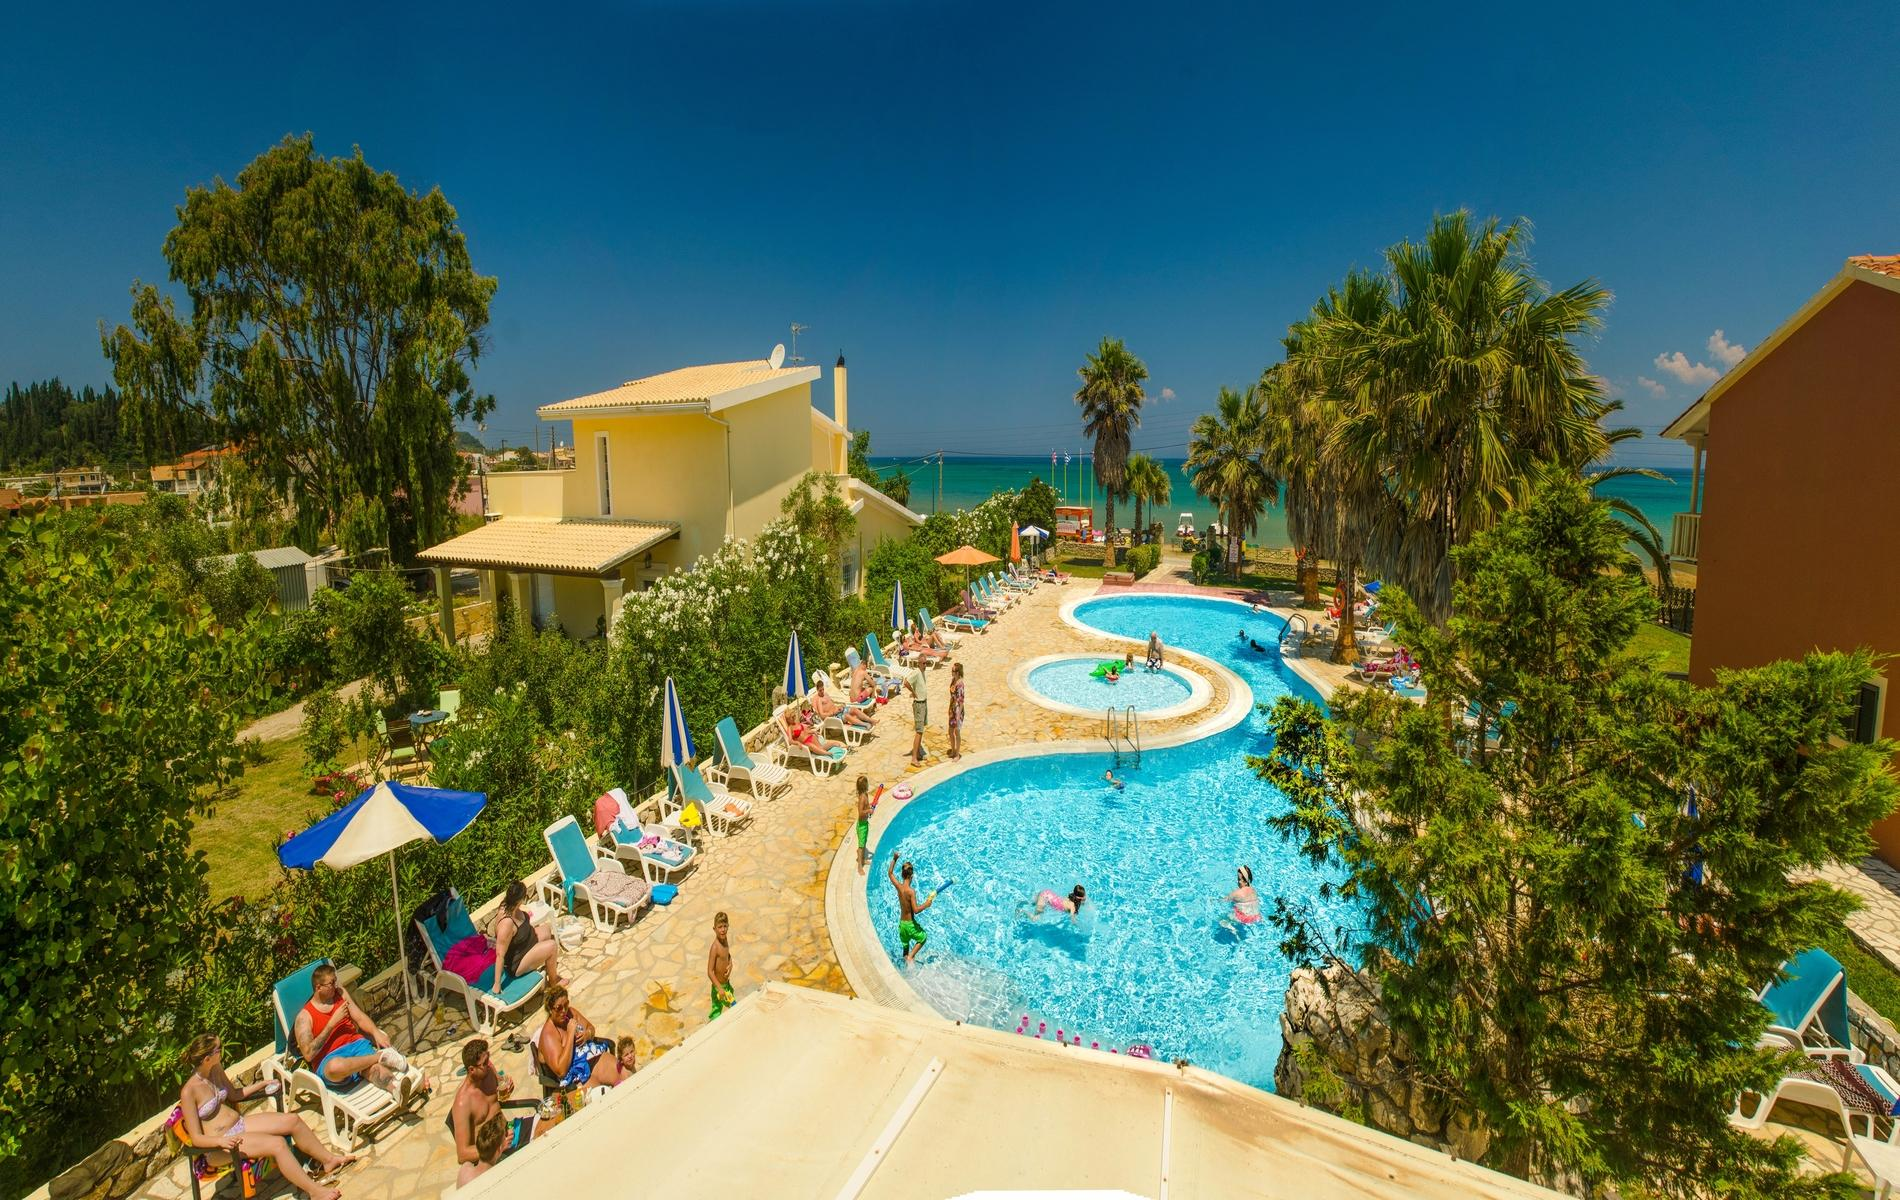 Orestis Aparthotel in Sidari, Corfu, Greek Islands